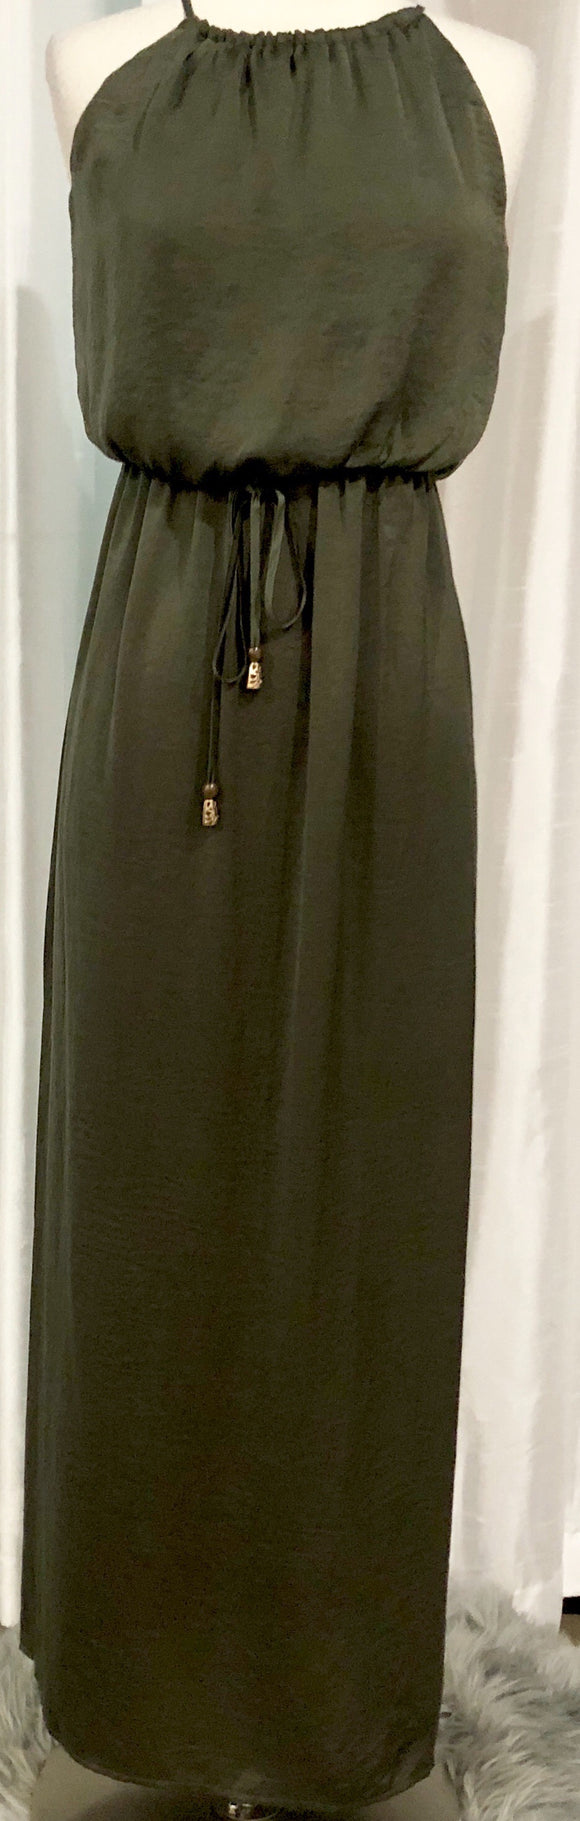 BOUTIQUE Olive Green Maxi Dress Size S NWT